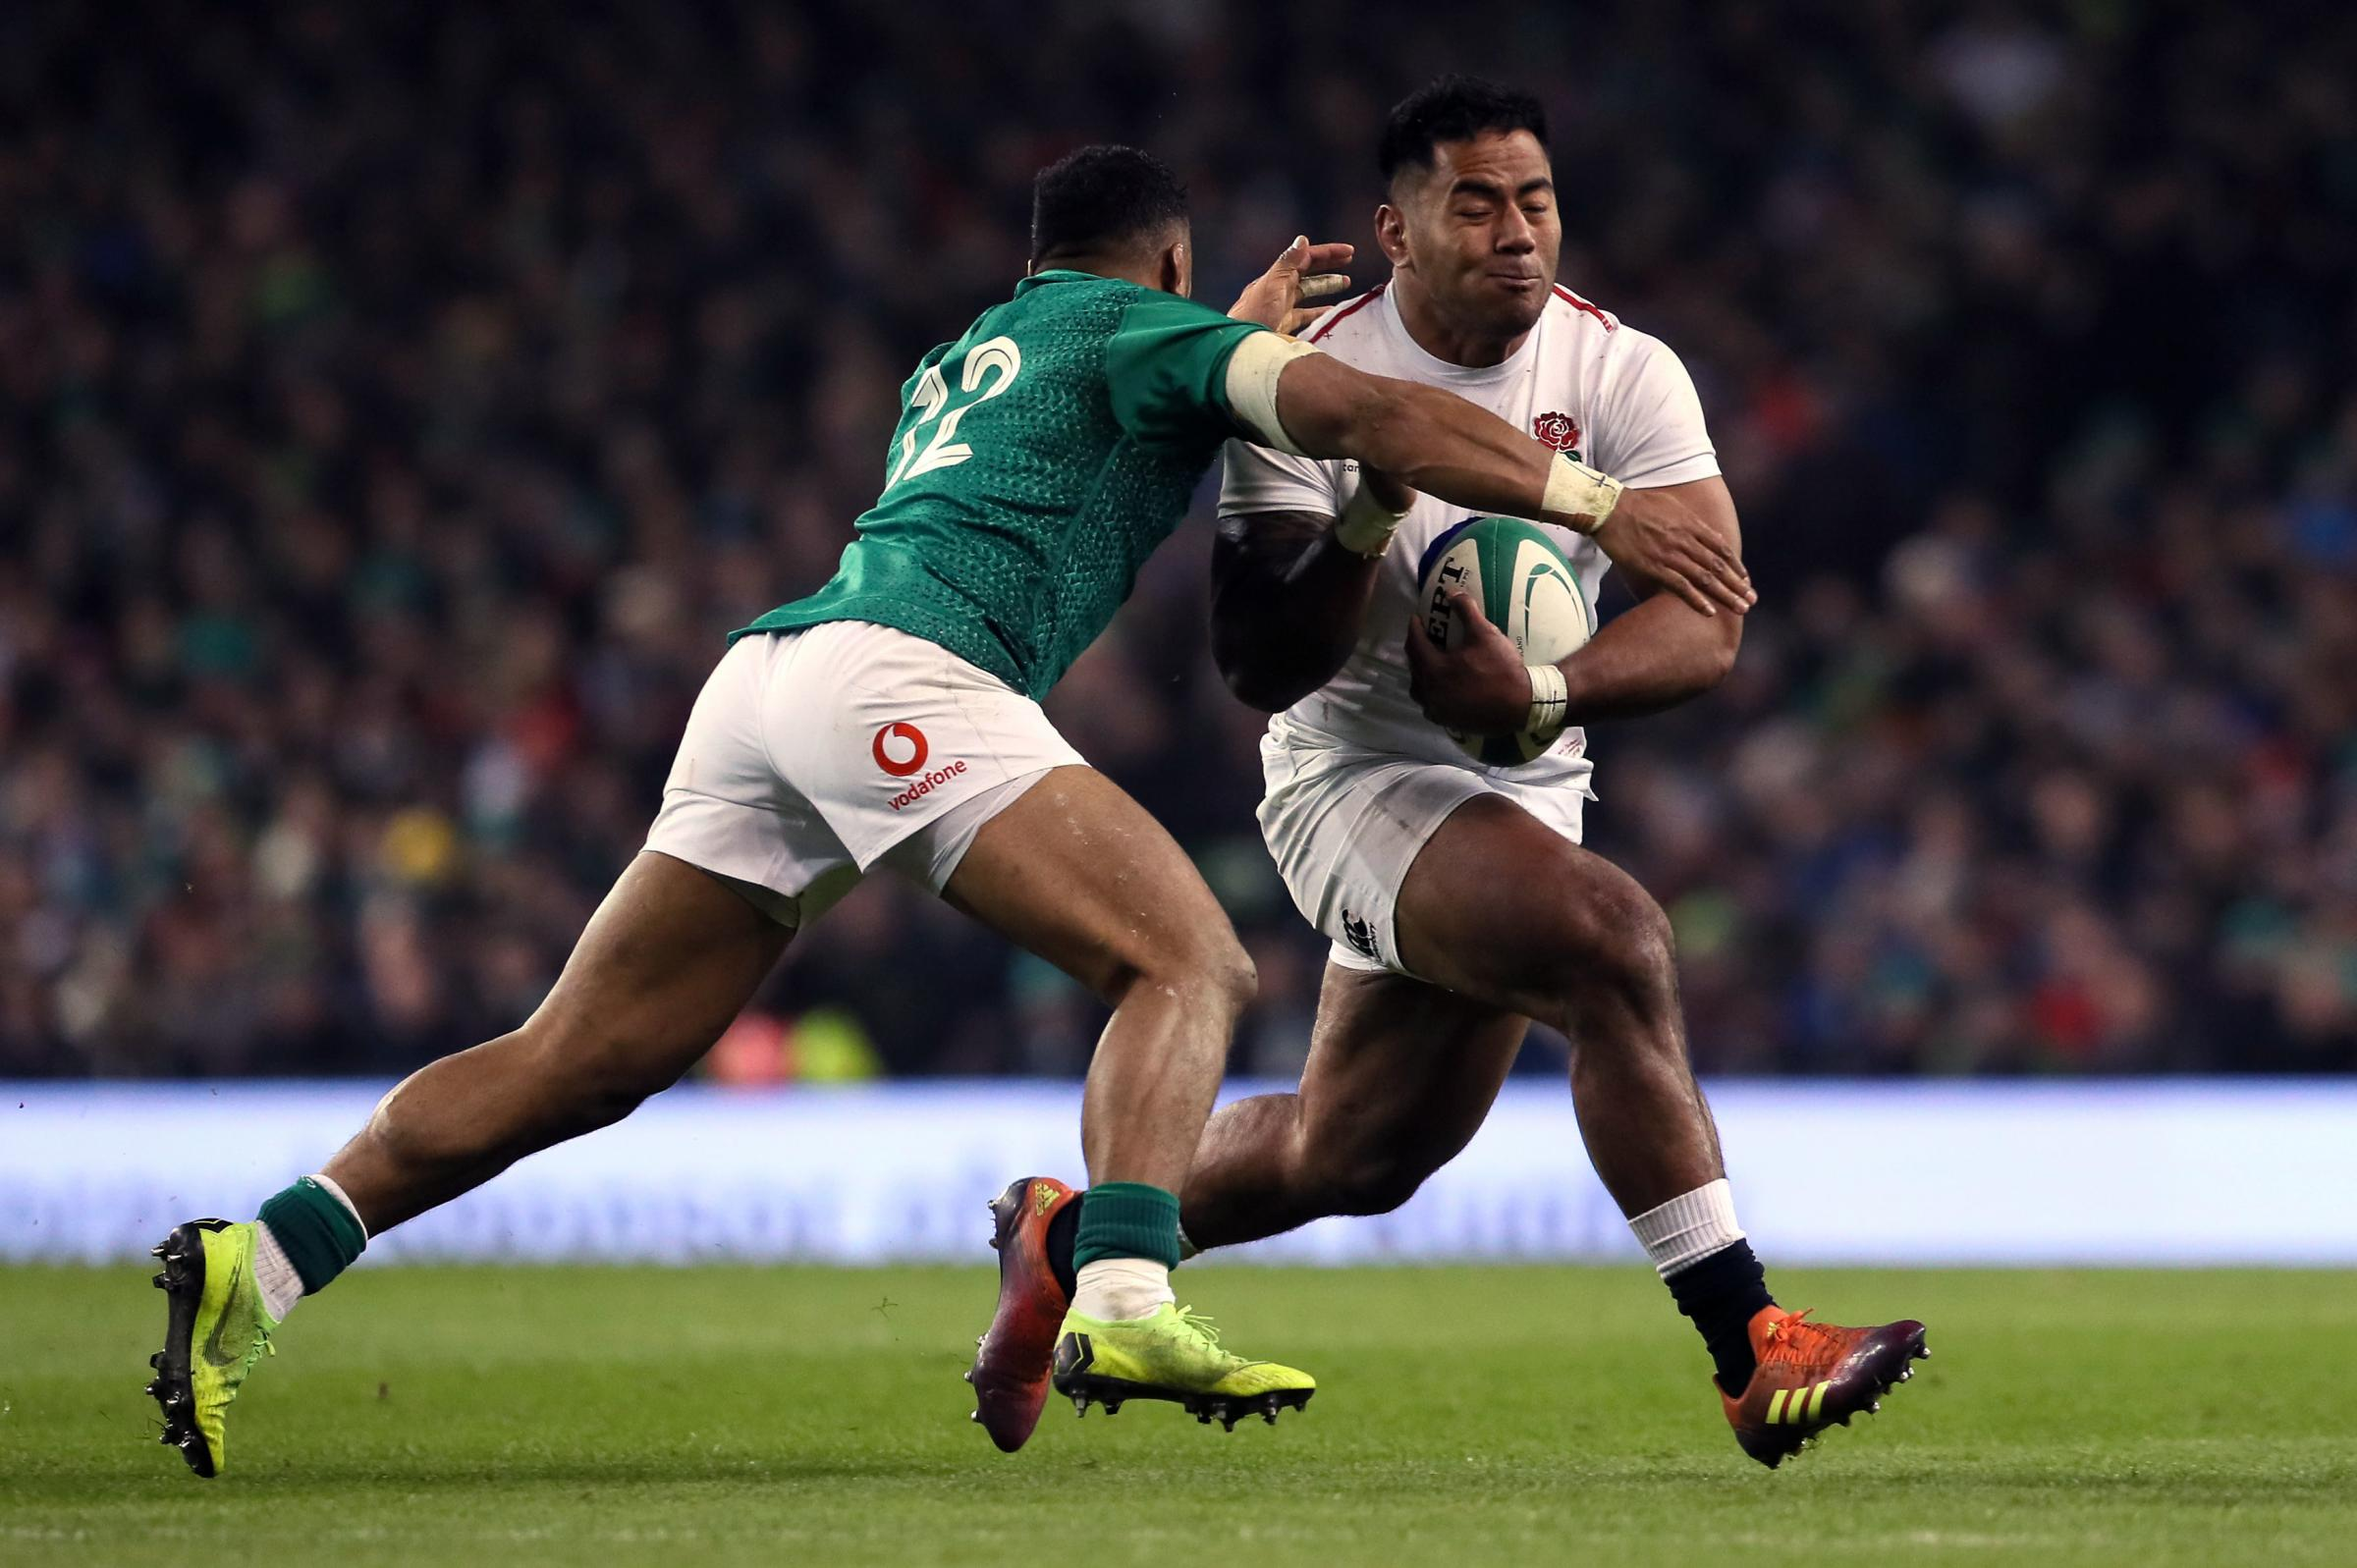 CENTRE STAGE: Strong-running Manu Tuilagi will lead the England charge from midfield in Cardiff